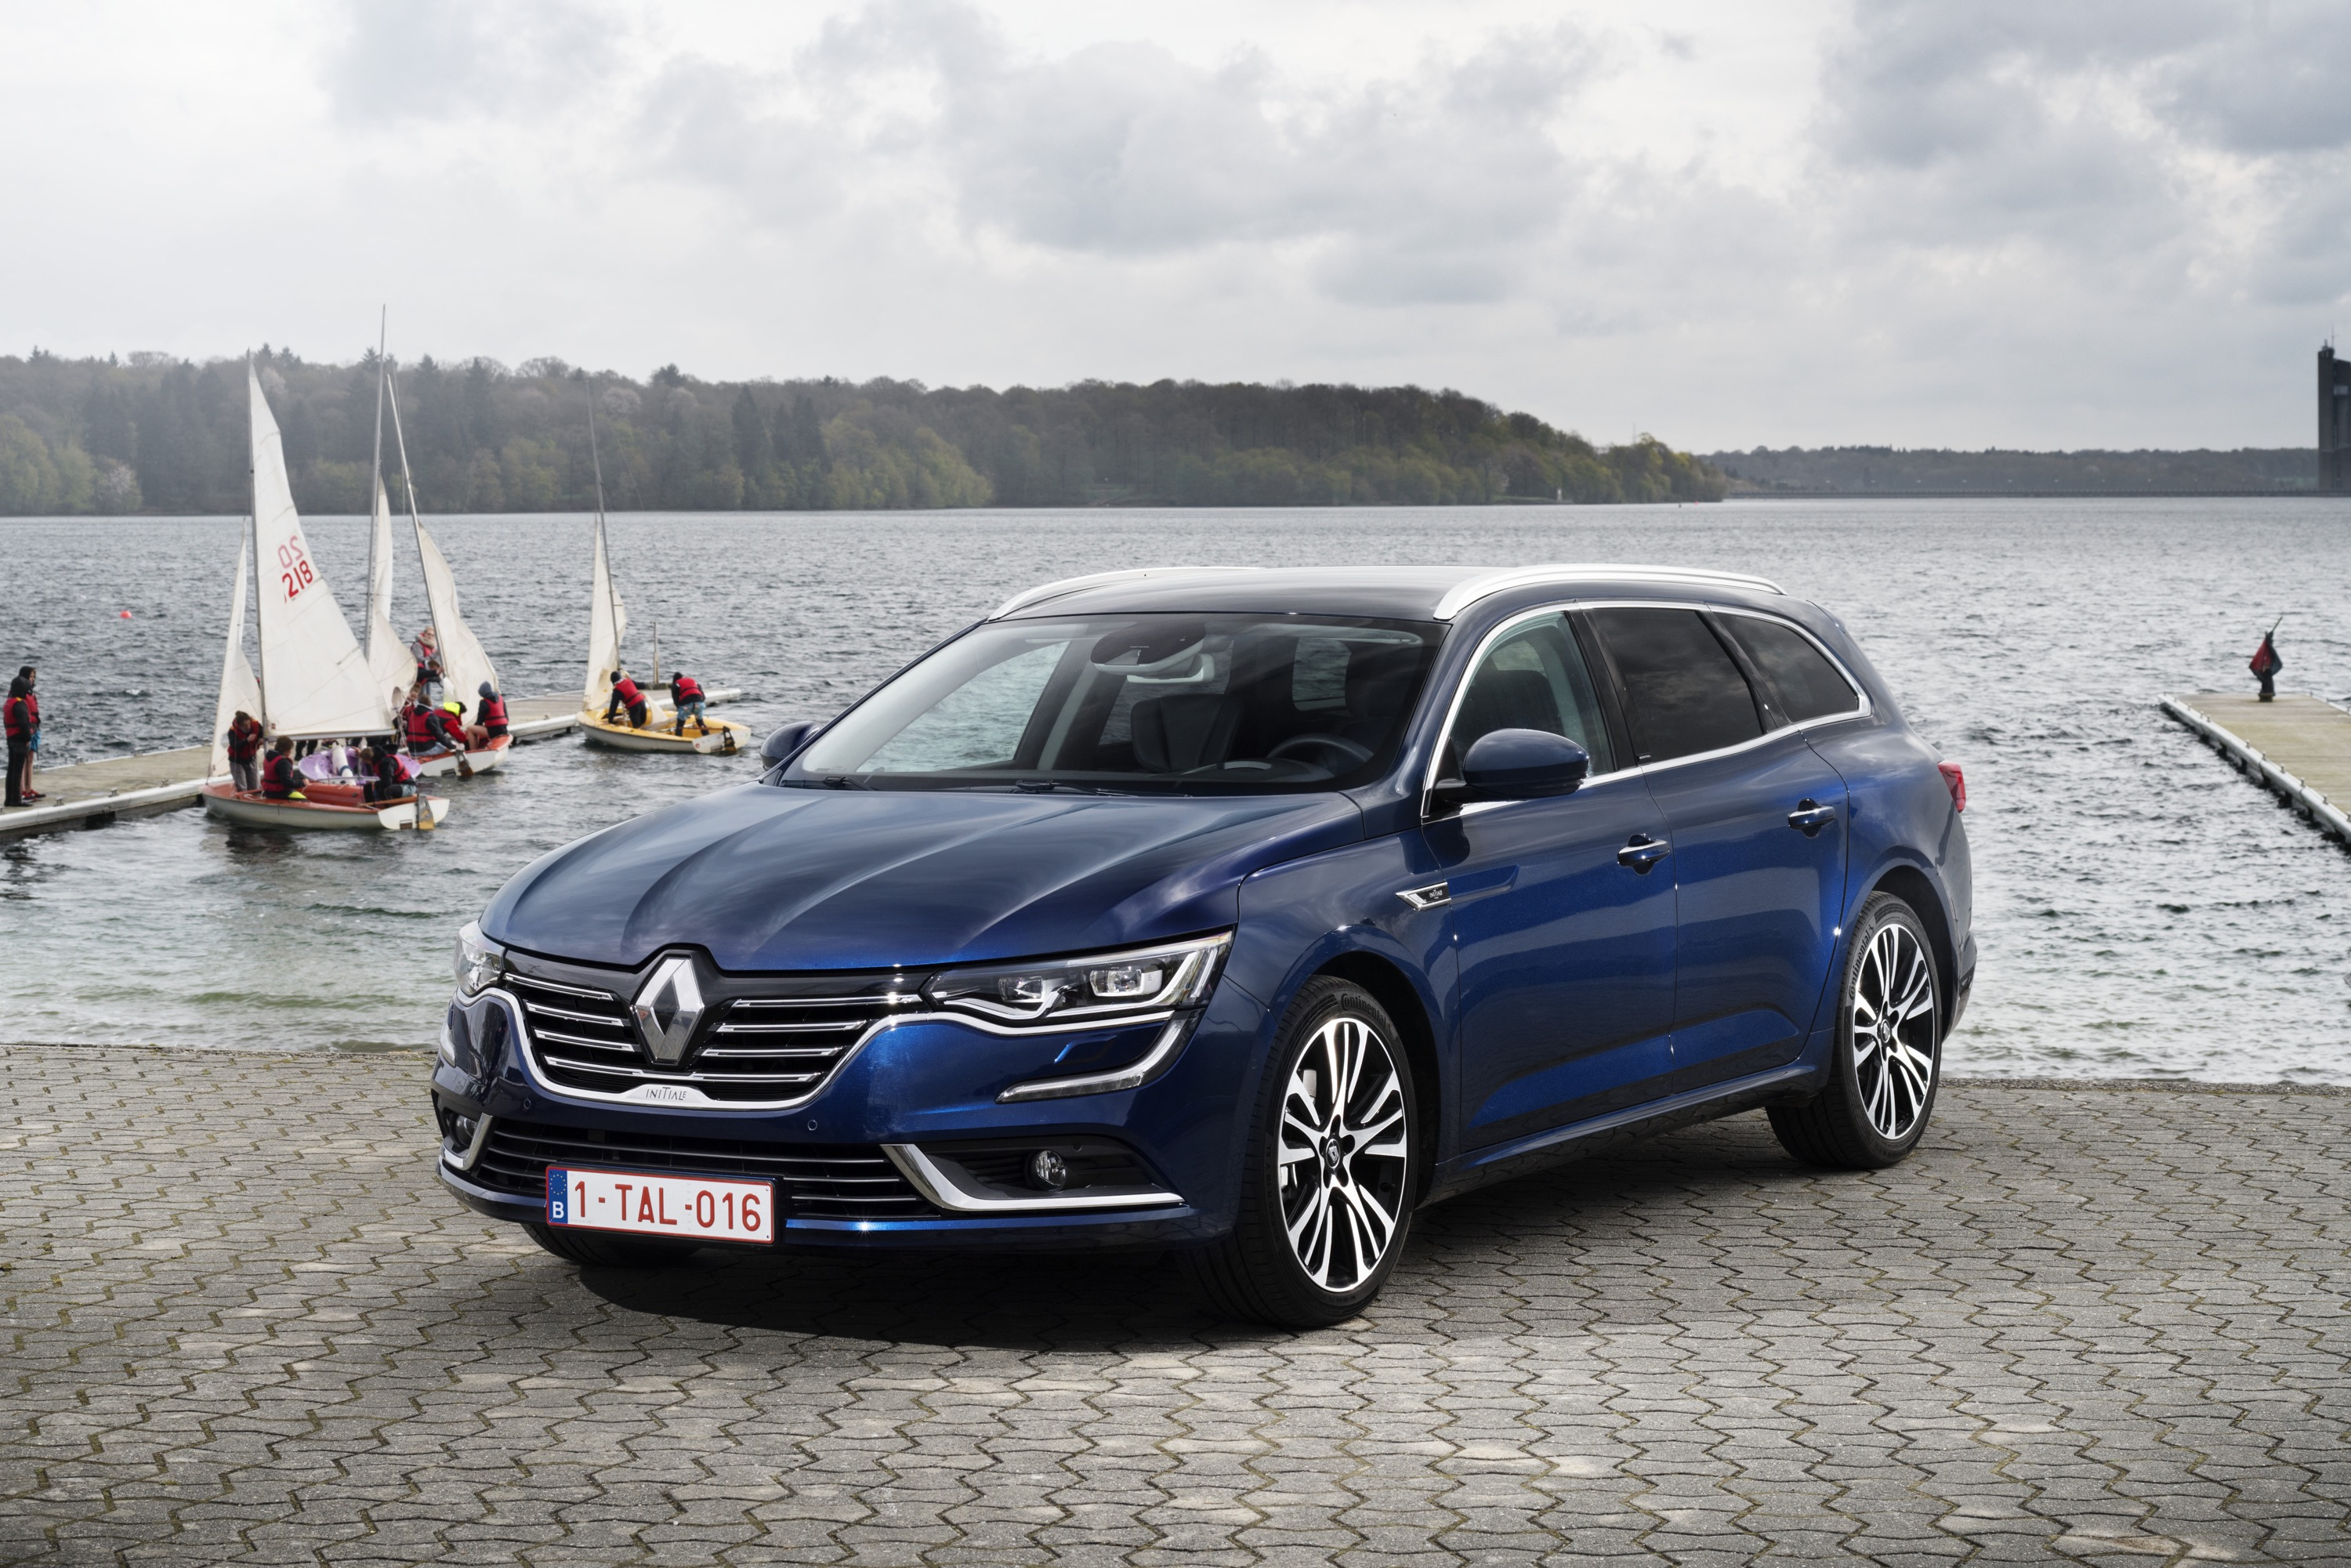 essai renault talisman grandtour du coffre en plus link2fleet link2fleet. Black Bedroom Furniture Sets. Home Design Ideas